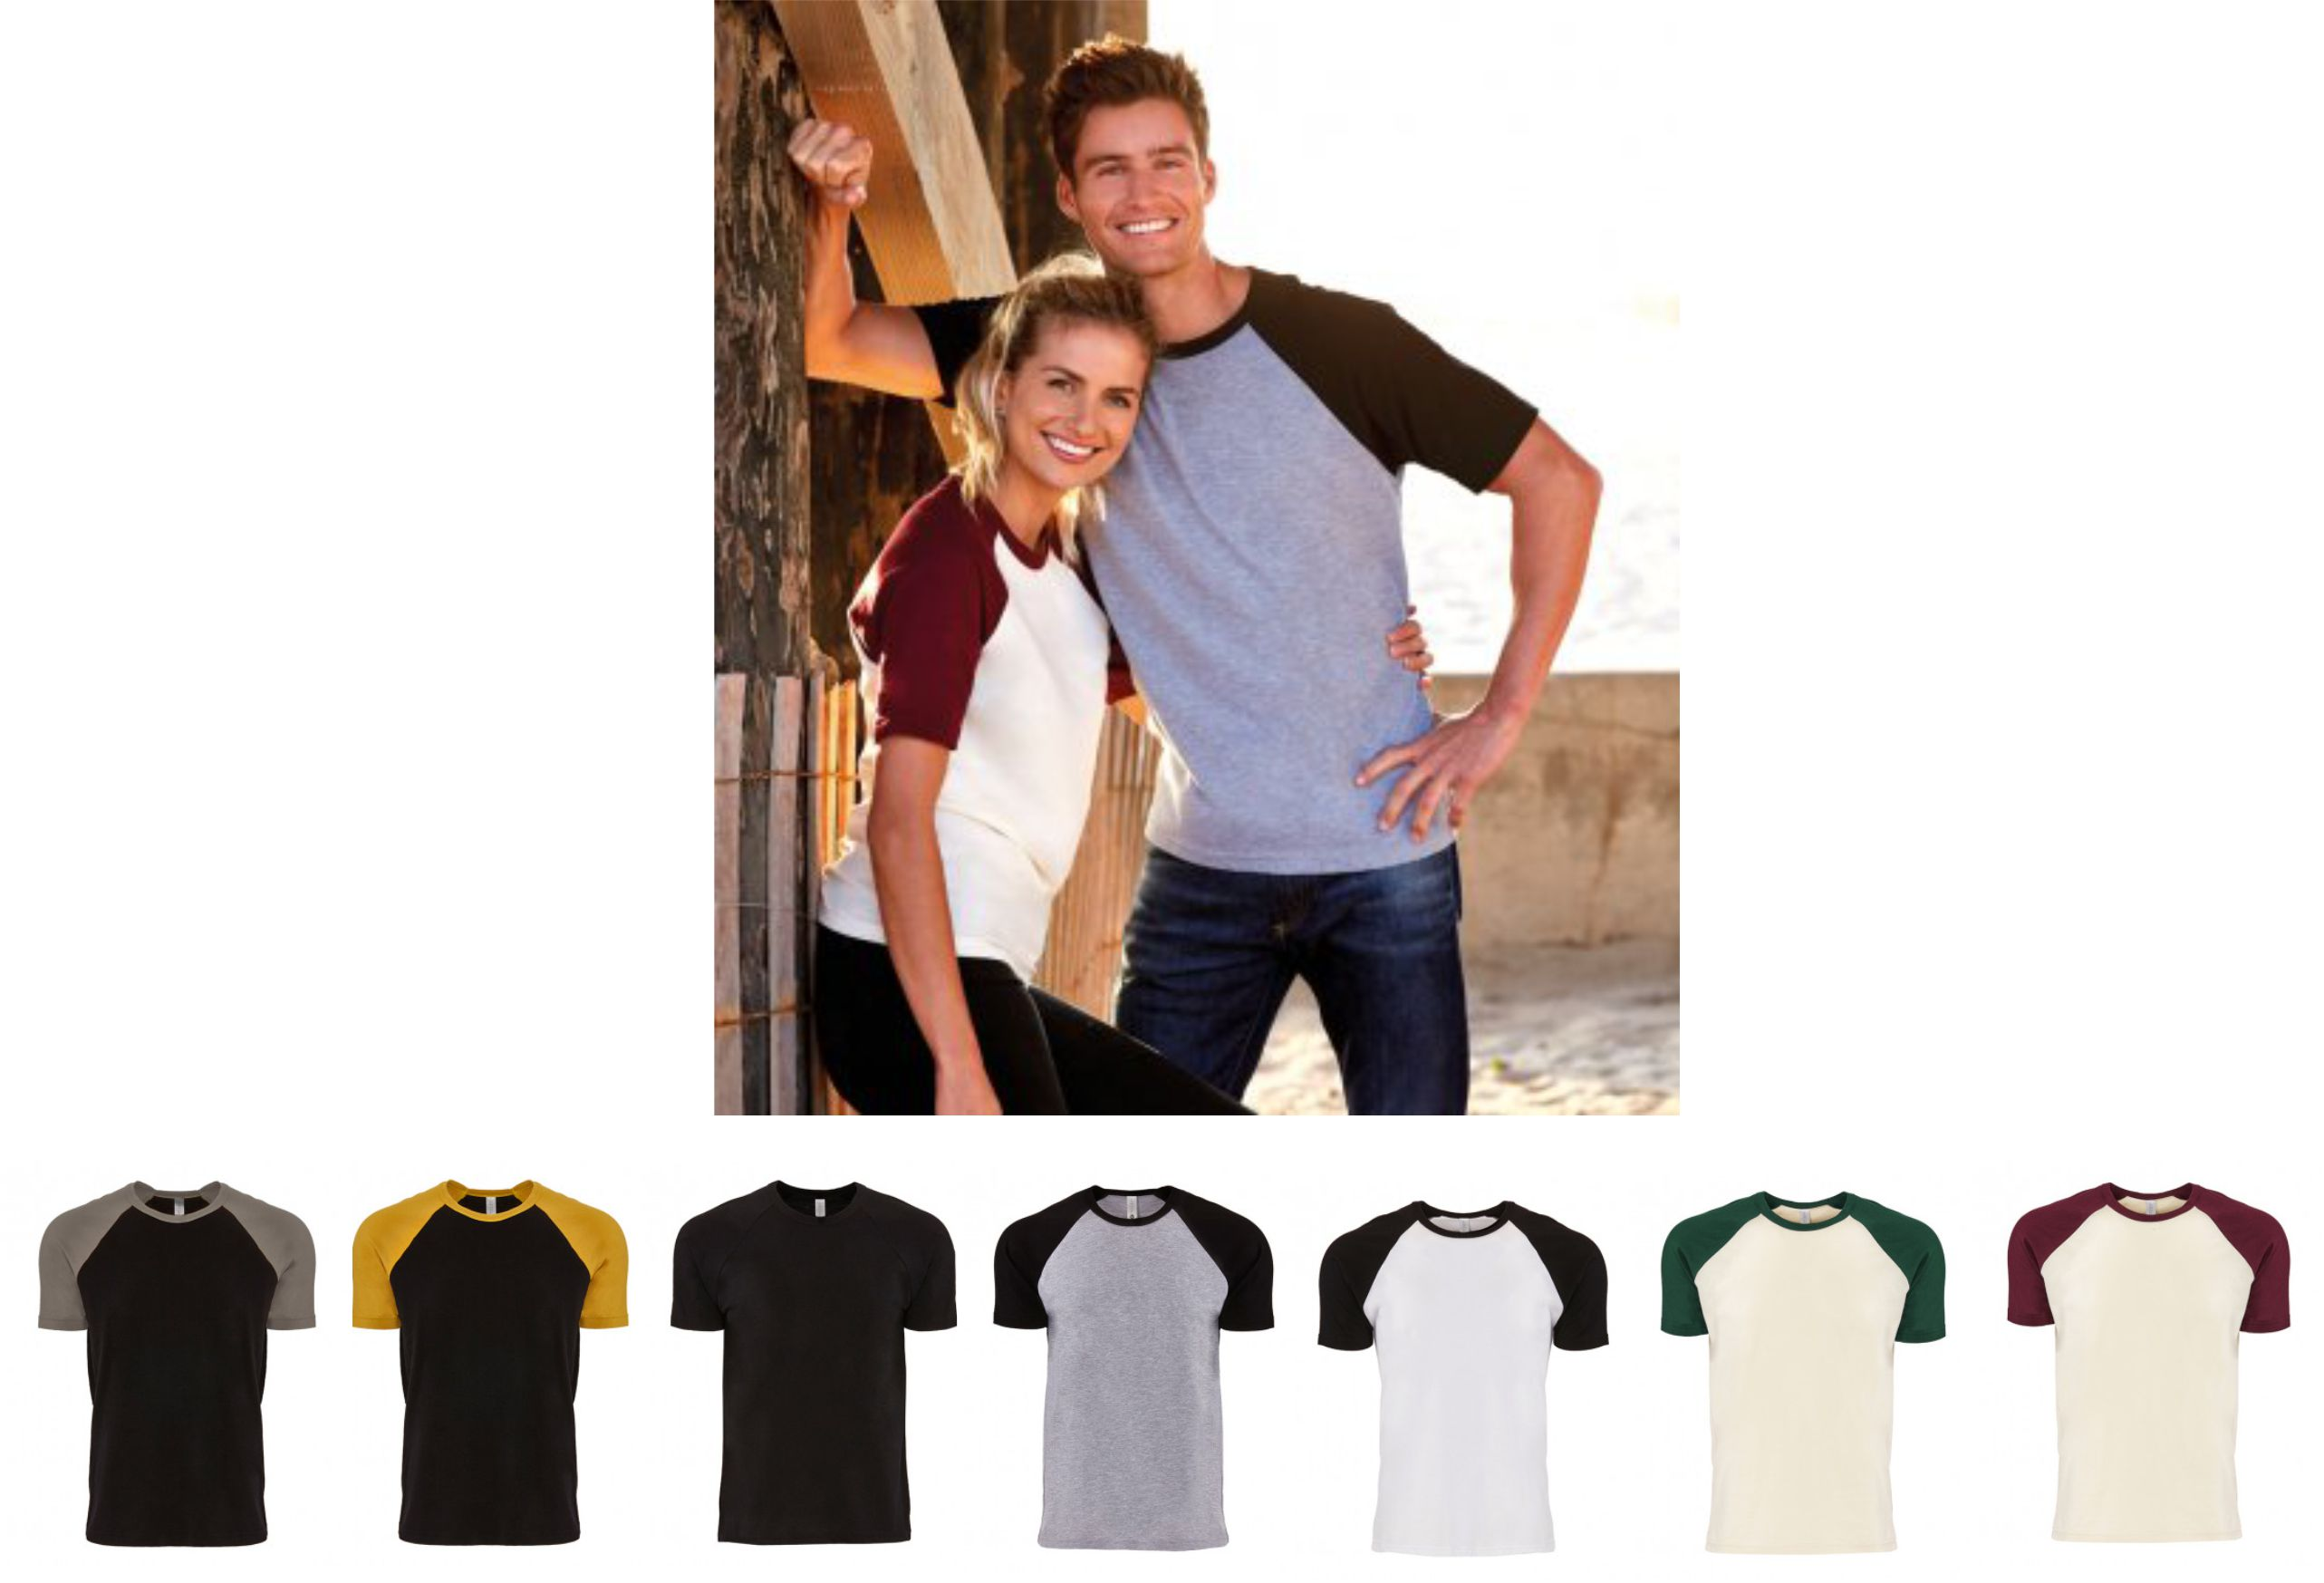 Next Level NX3650 Unisex Contrast Cotton Raglan T-Shirt